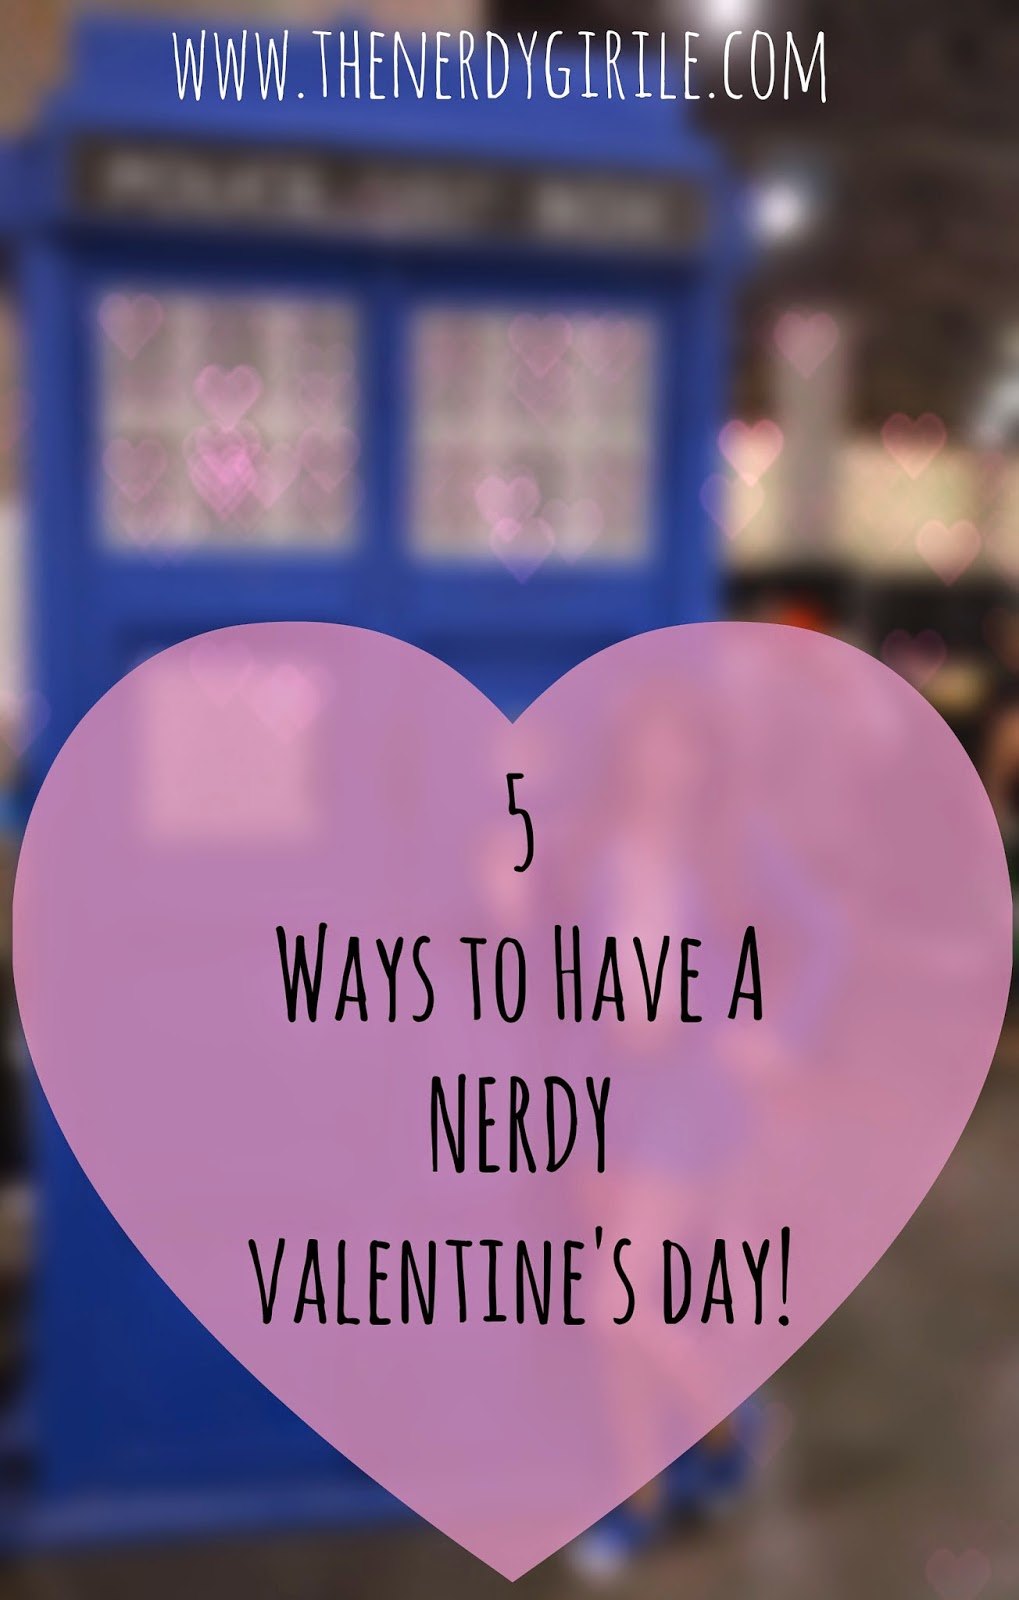 5 Tips For A Nerdy Valentineu0027s Day